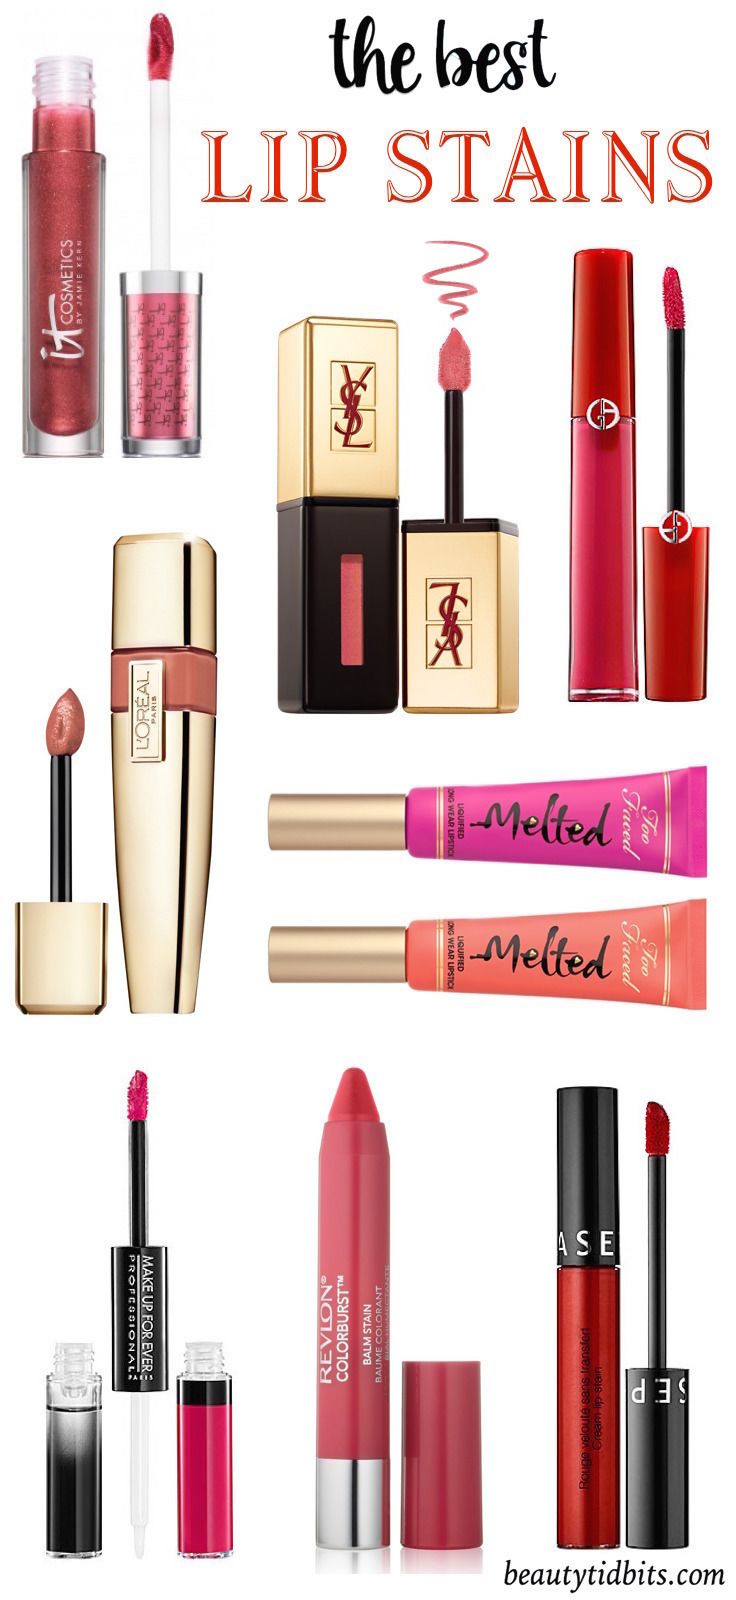 The 8 best lip stains (via @ beautytidbits) #POPSUGARSelect